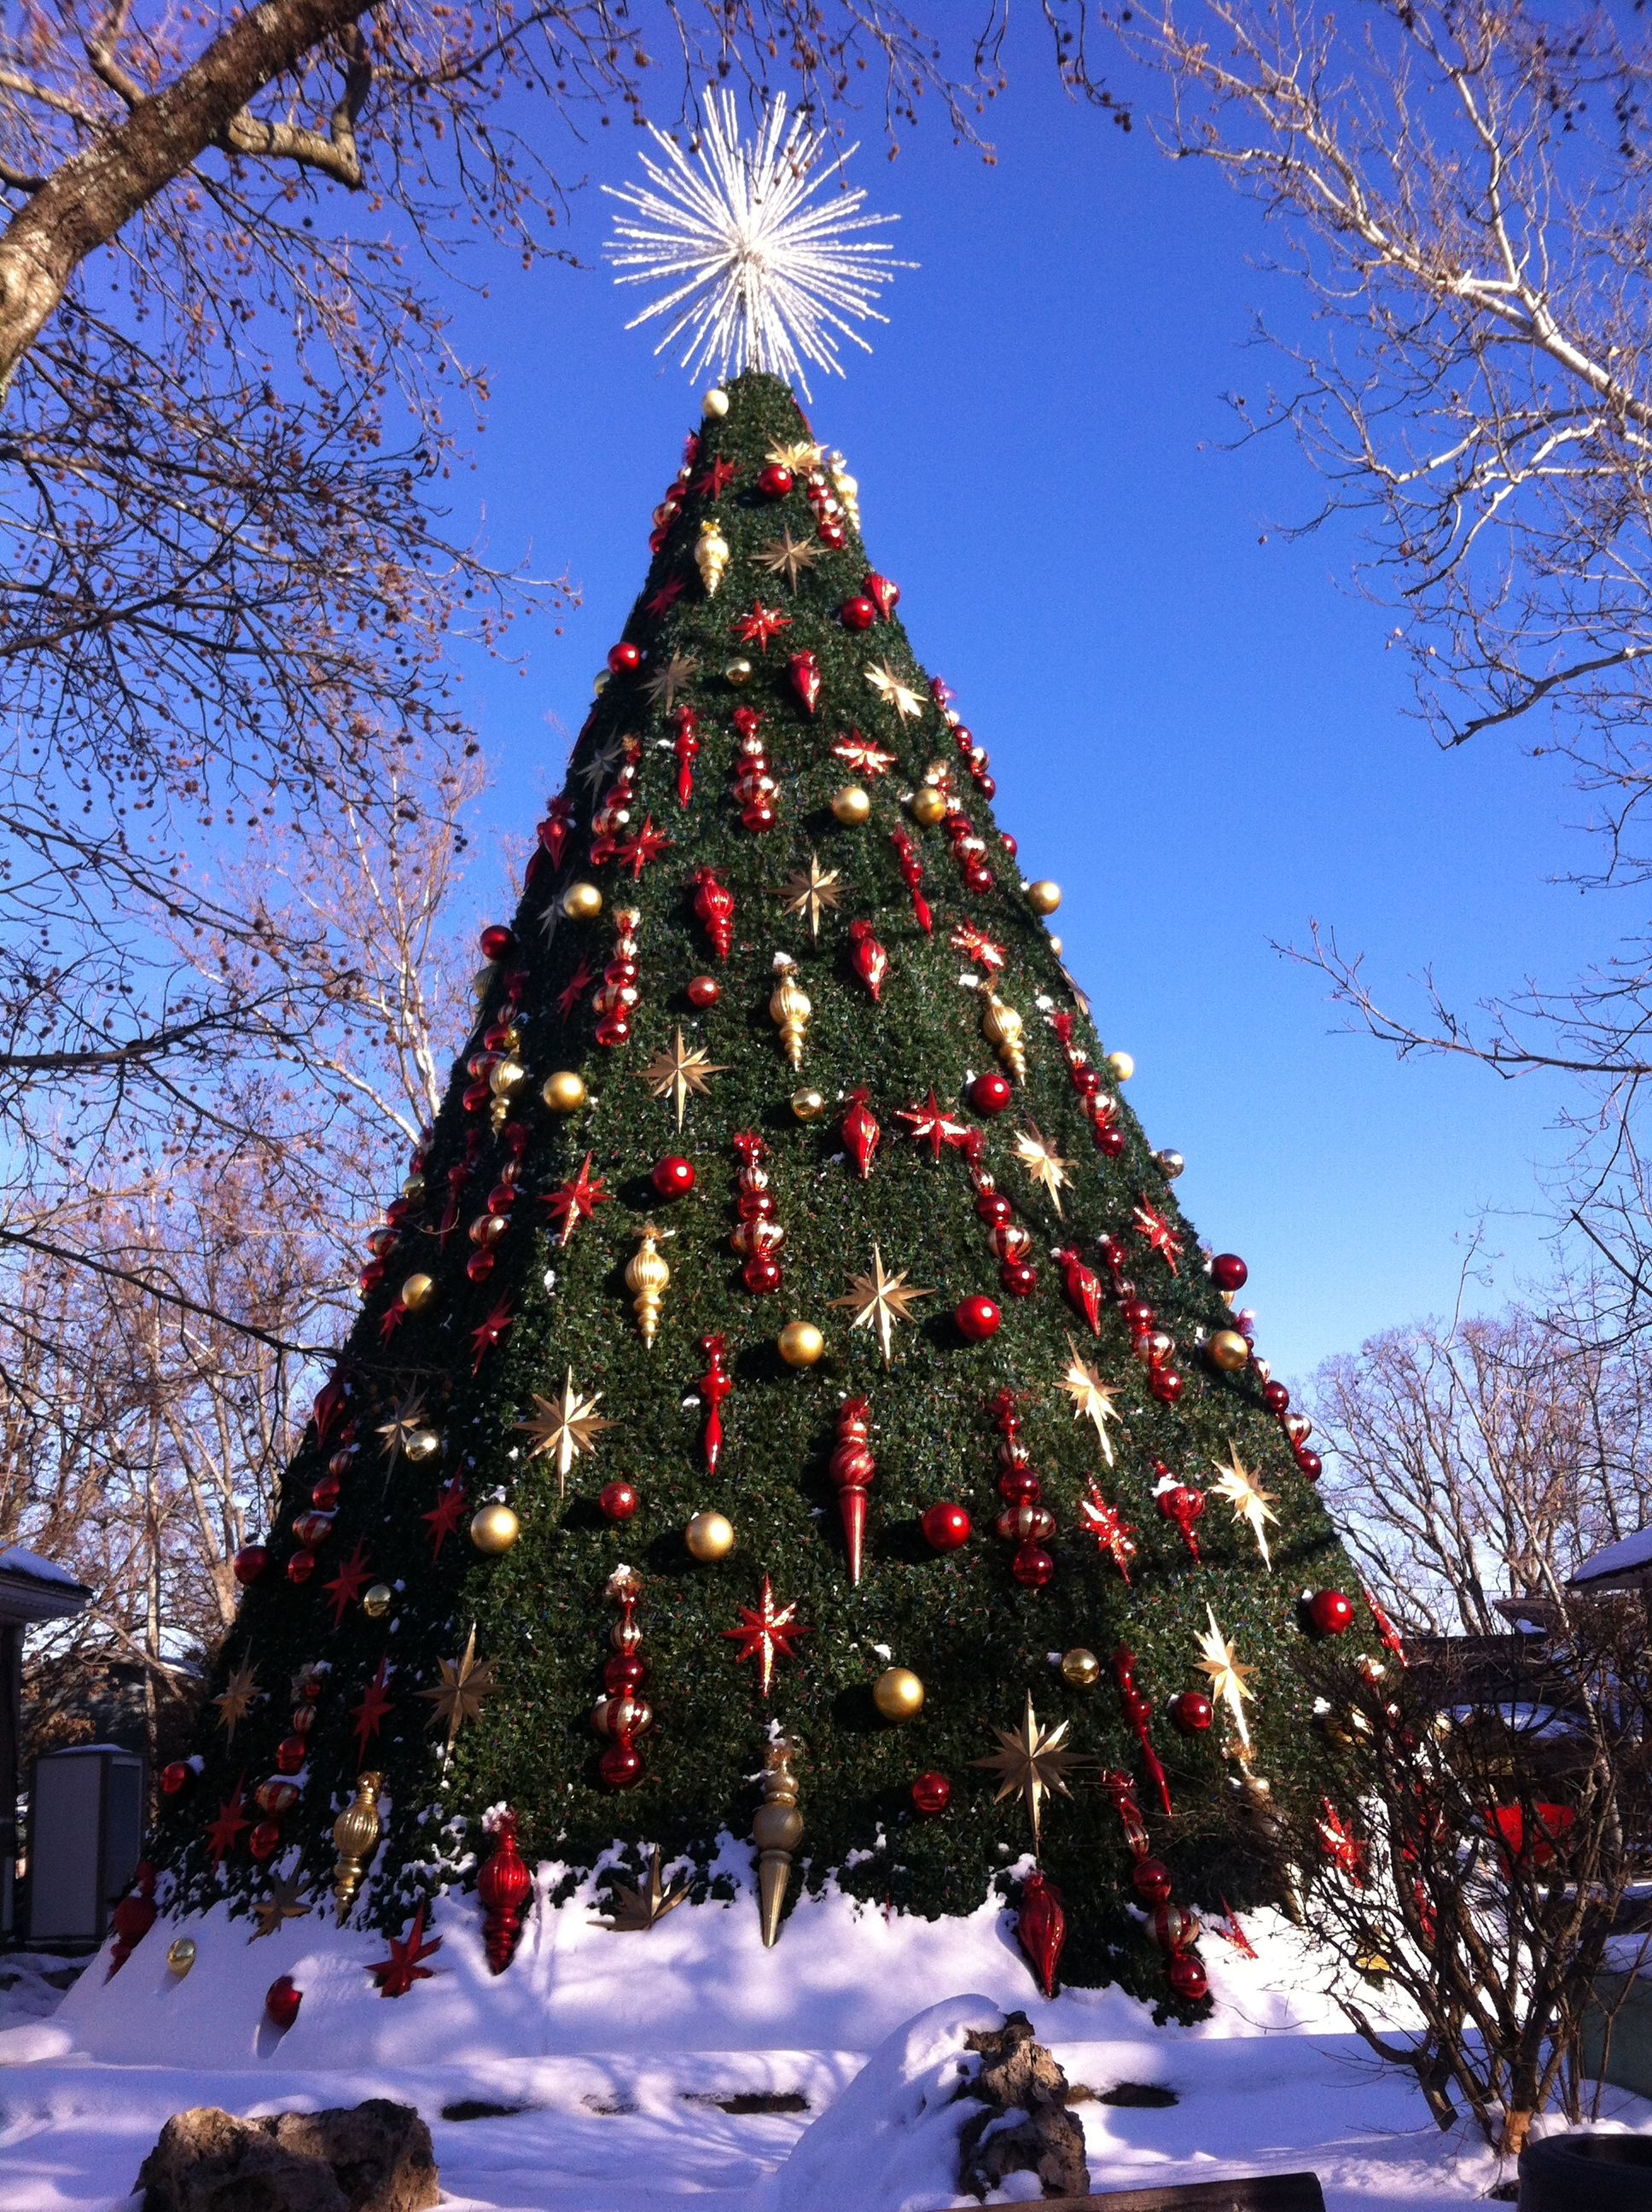 5 Story Christmas Tree At Silverdollarcity Silver Dollar City Old Time Christmas Dogwood Canyon